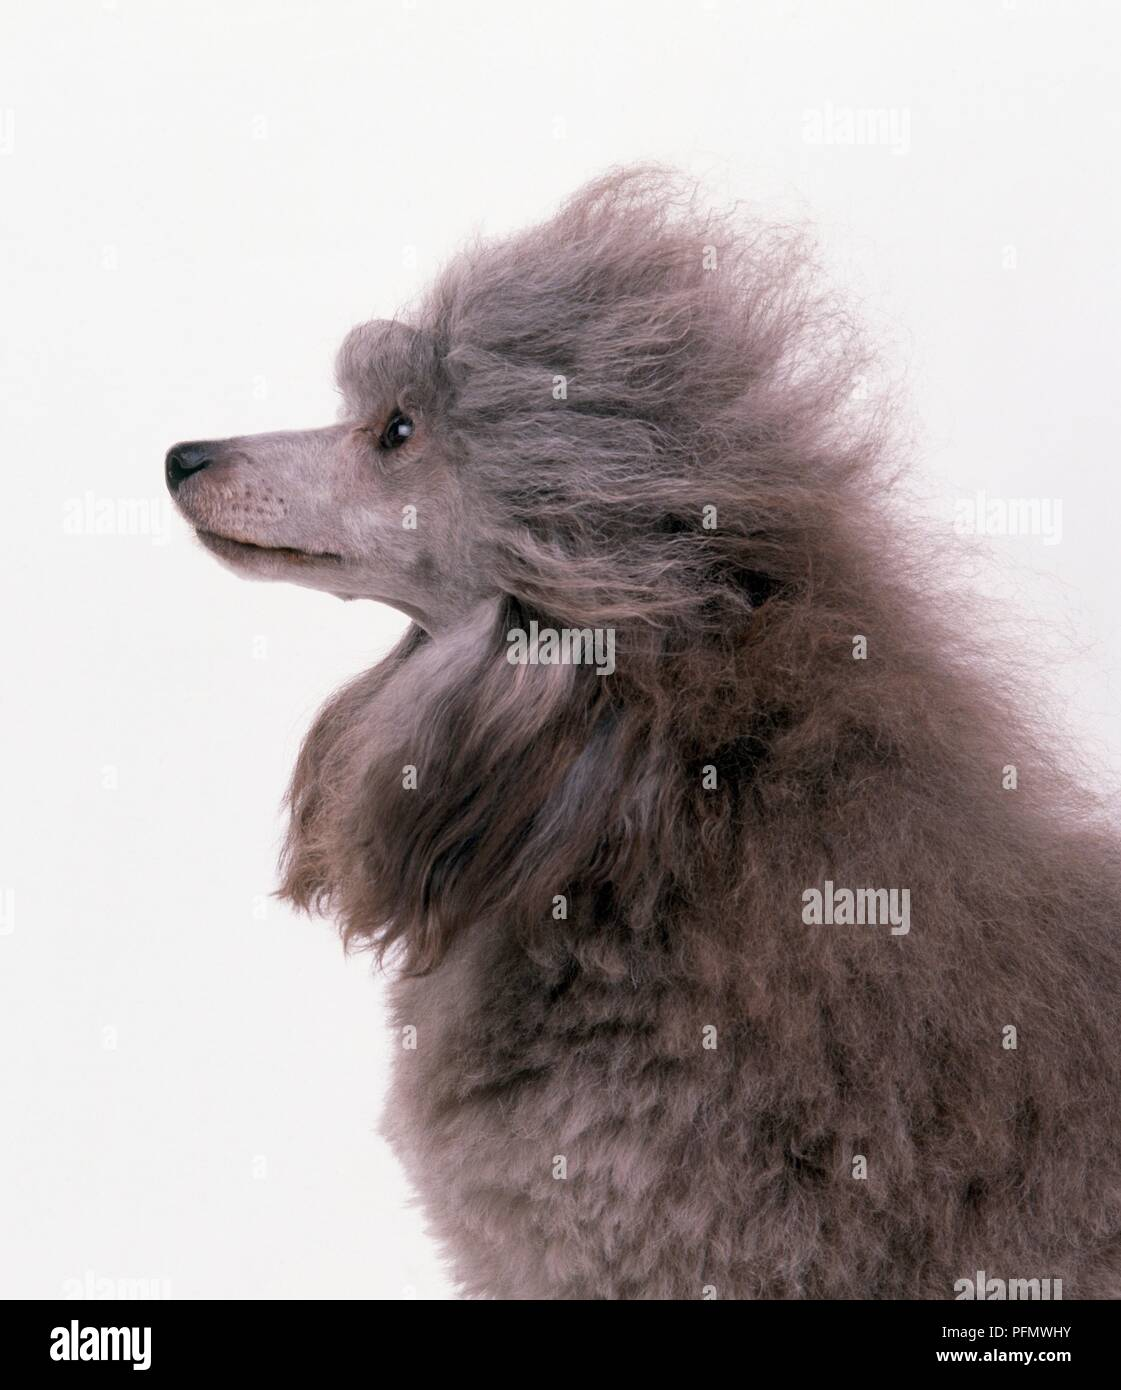 Head and shoulders of a groomed grey poodle, side view - Stock Image